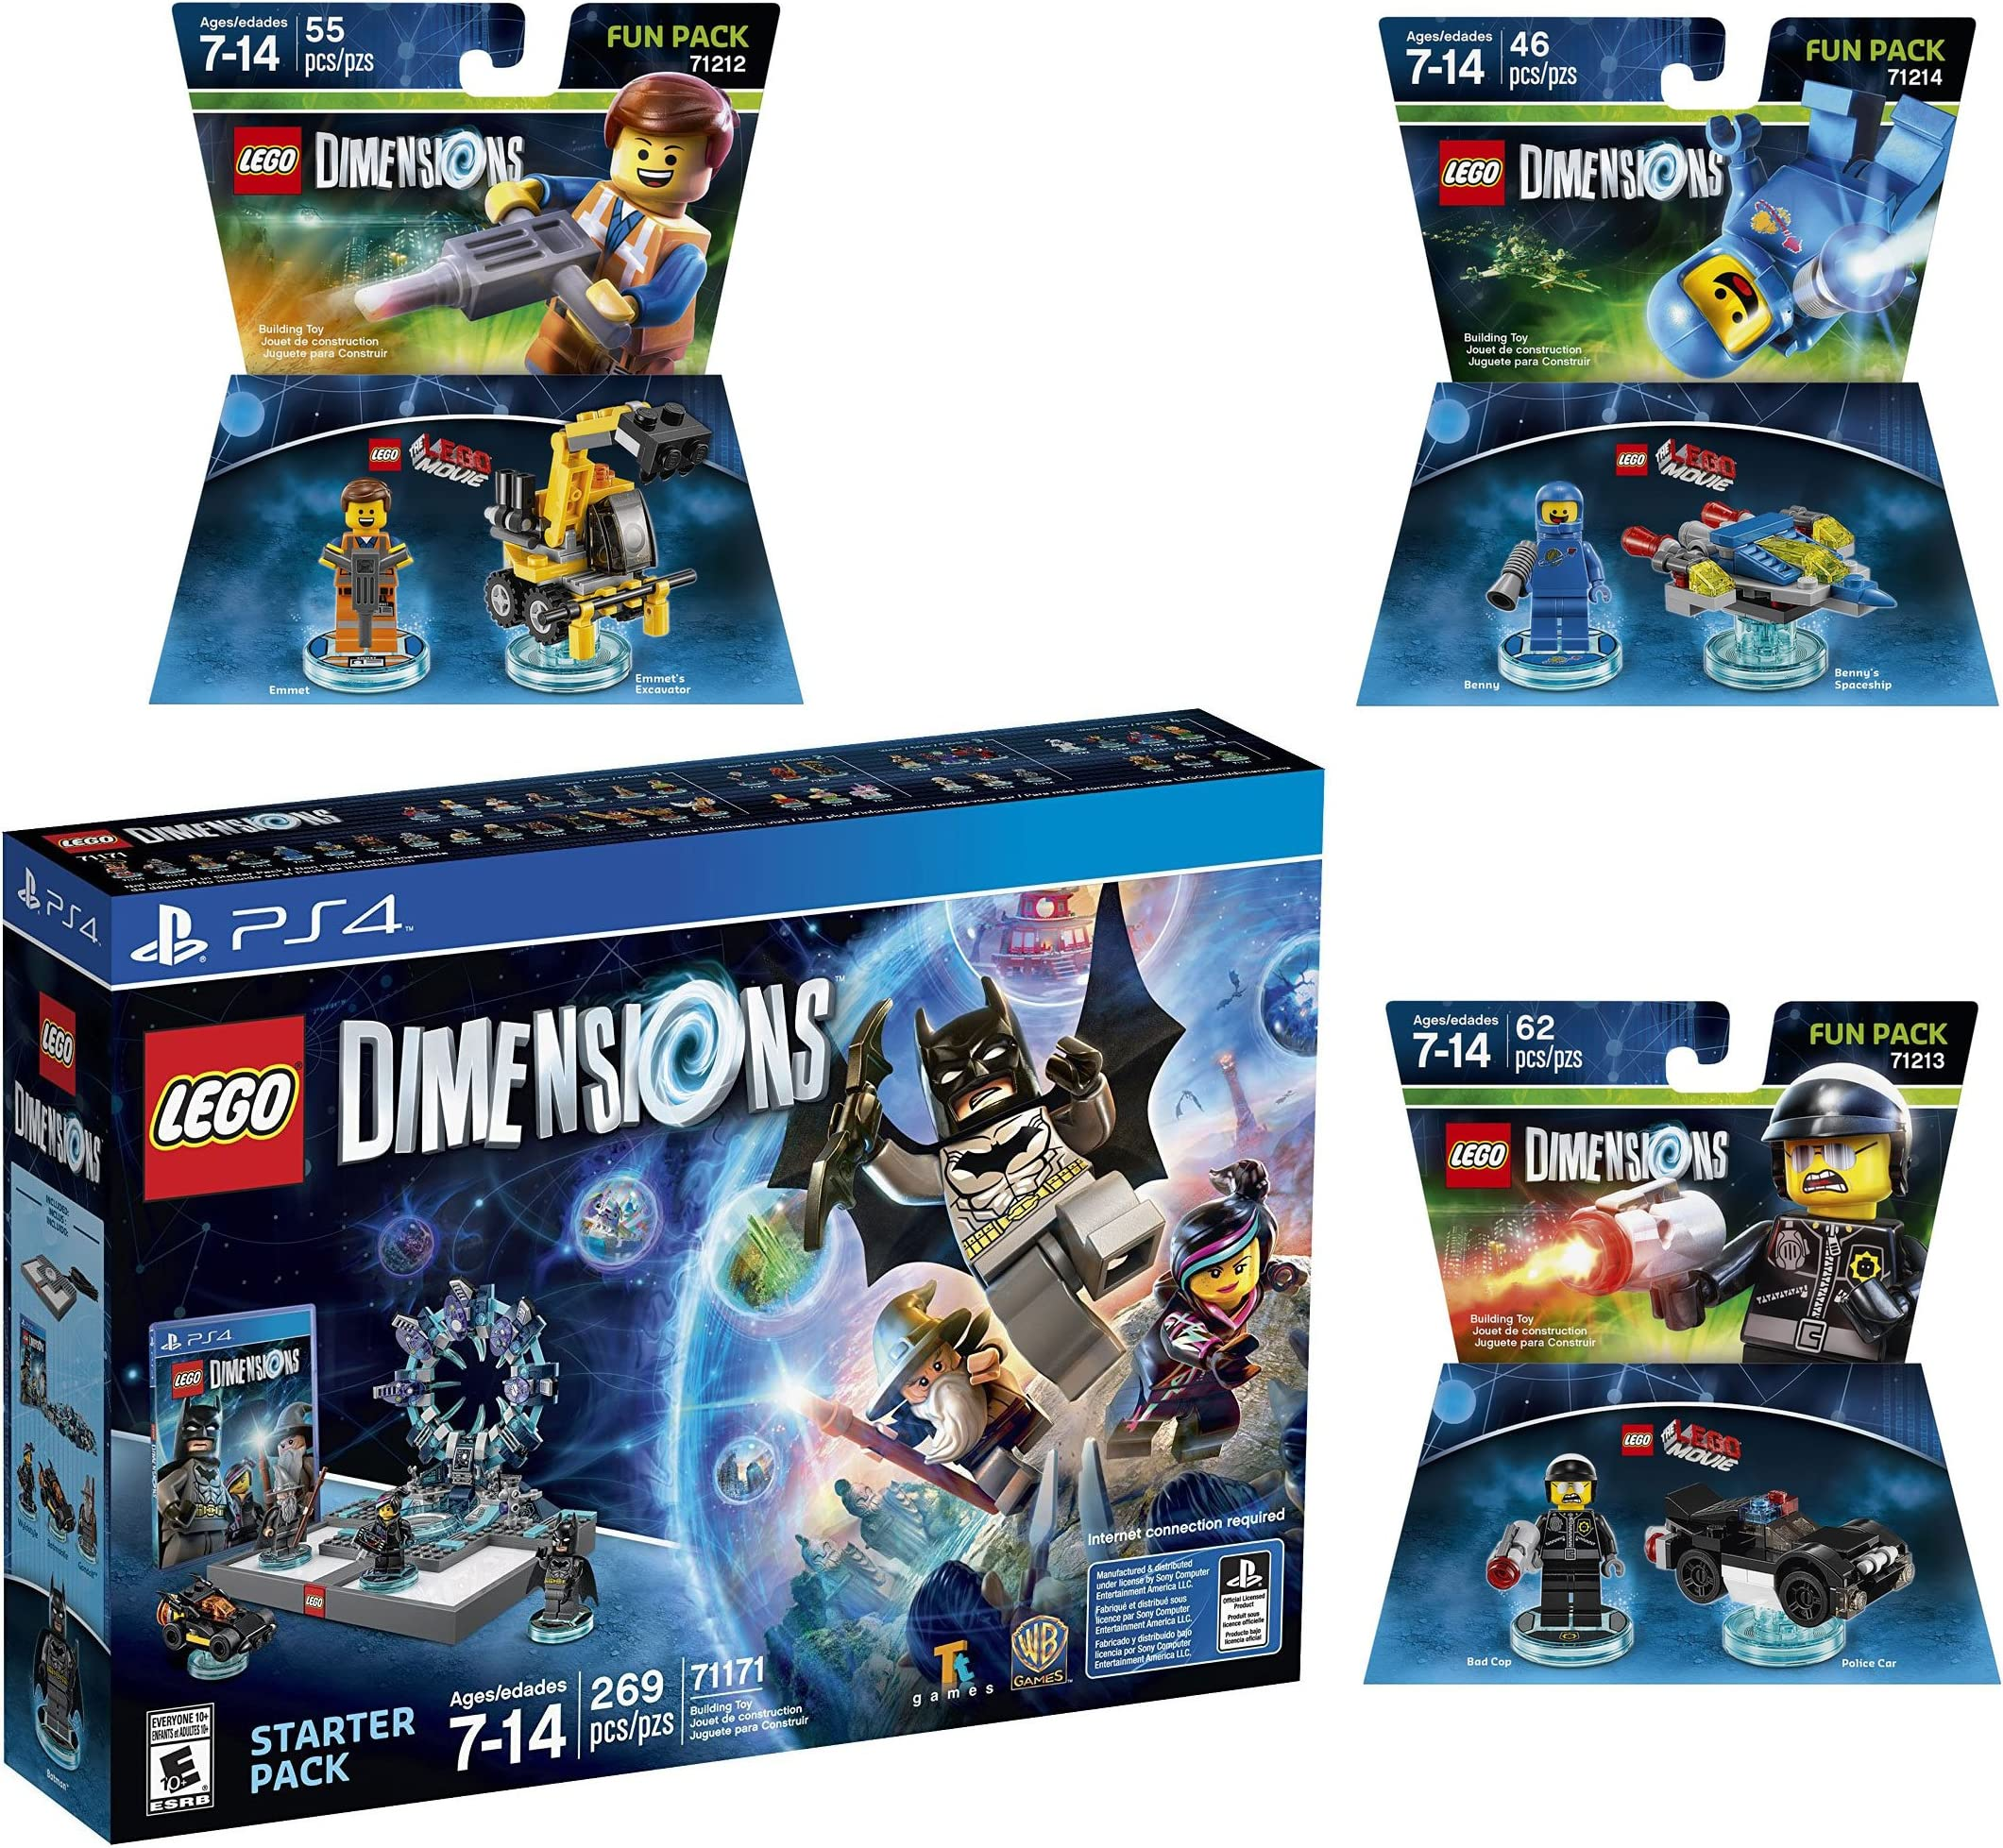 Amazon.com: Lego Dimensions The Lego Movie Starter Pack + ...